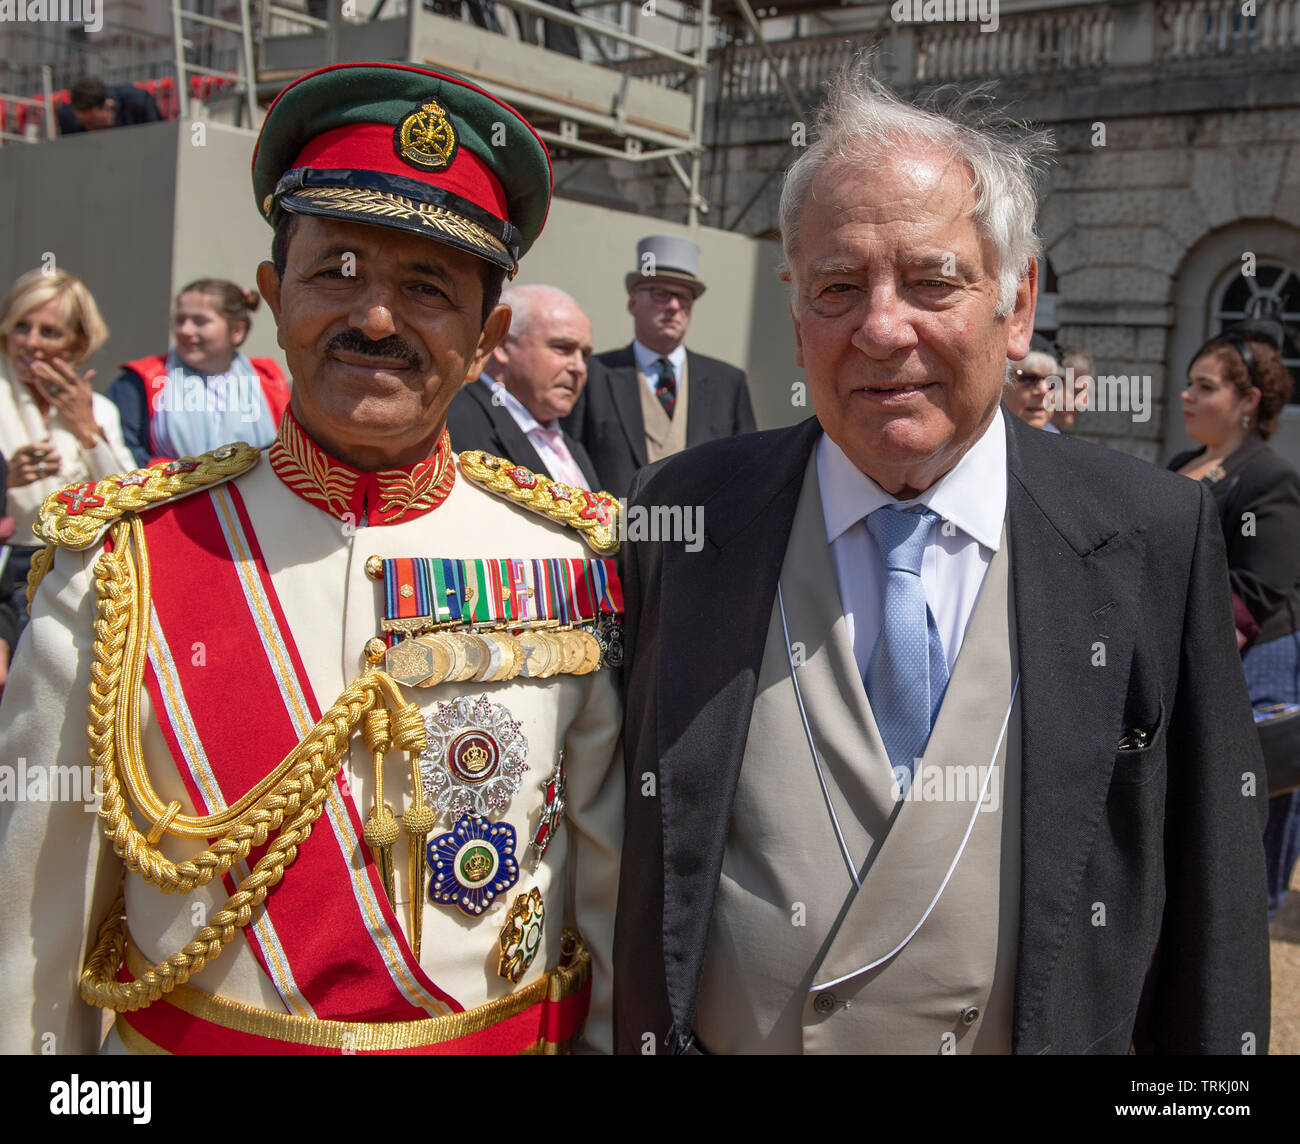 Horse Guards Parade, London, UK. 8th June 2019. Guests leave Horse Guards Parade after Trooping the Colour. Image: Chief of Staff of Sultan's Armed Forces (Sultanate of Oman) Lt Gen Ahmed bin Harith al Nabhani with former UK Chief of Defence Staff Field Marshal Lord Guthrie, who was injured after falling from his horse in the 2018 Trooping the Colour. Credit: Malcolm Park/Alamy Live News. Stock Photo